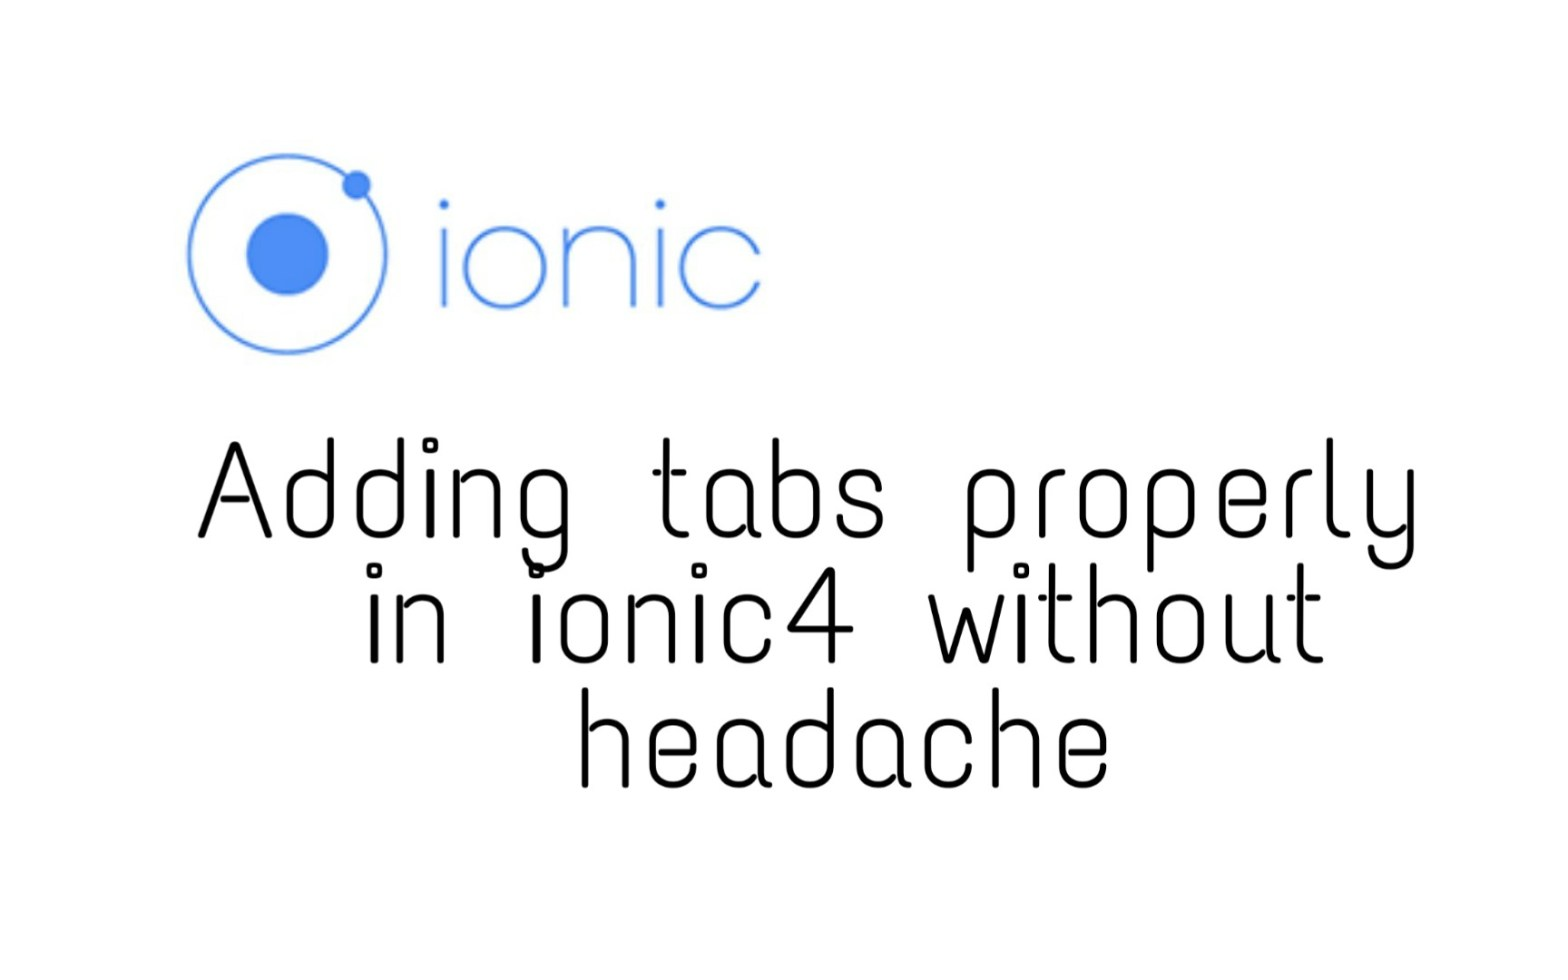 How to add tabs in ionic 4 | OvpV